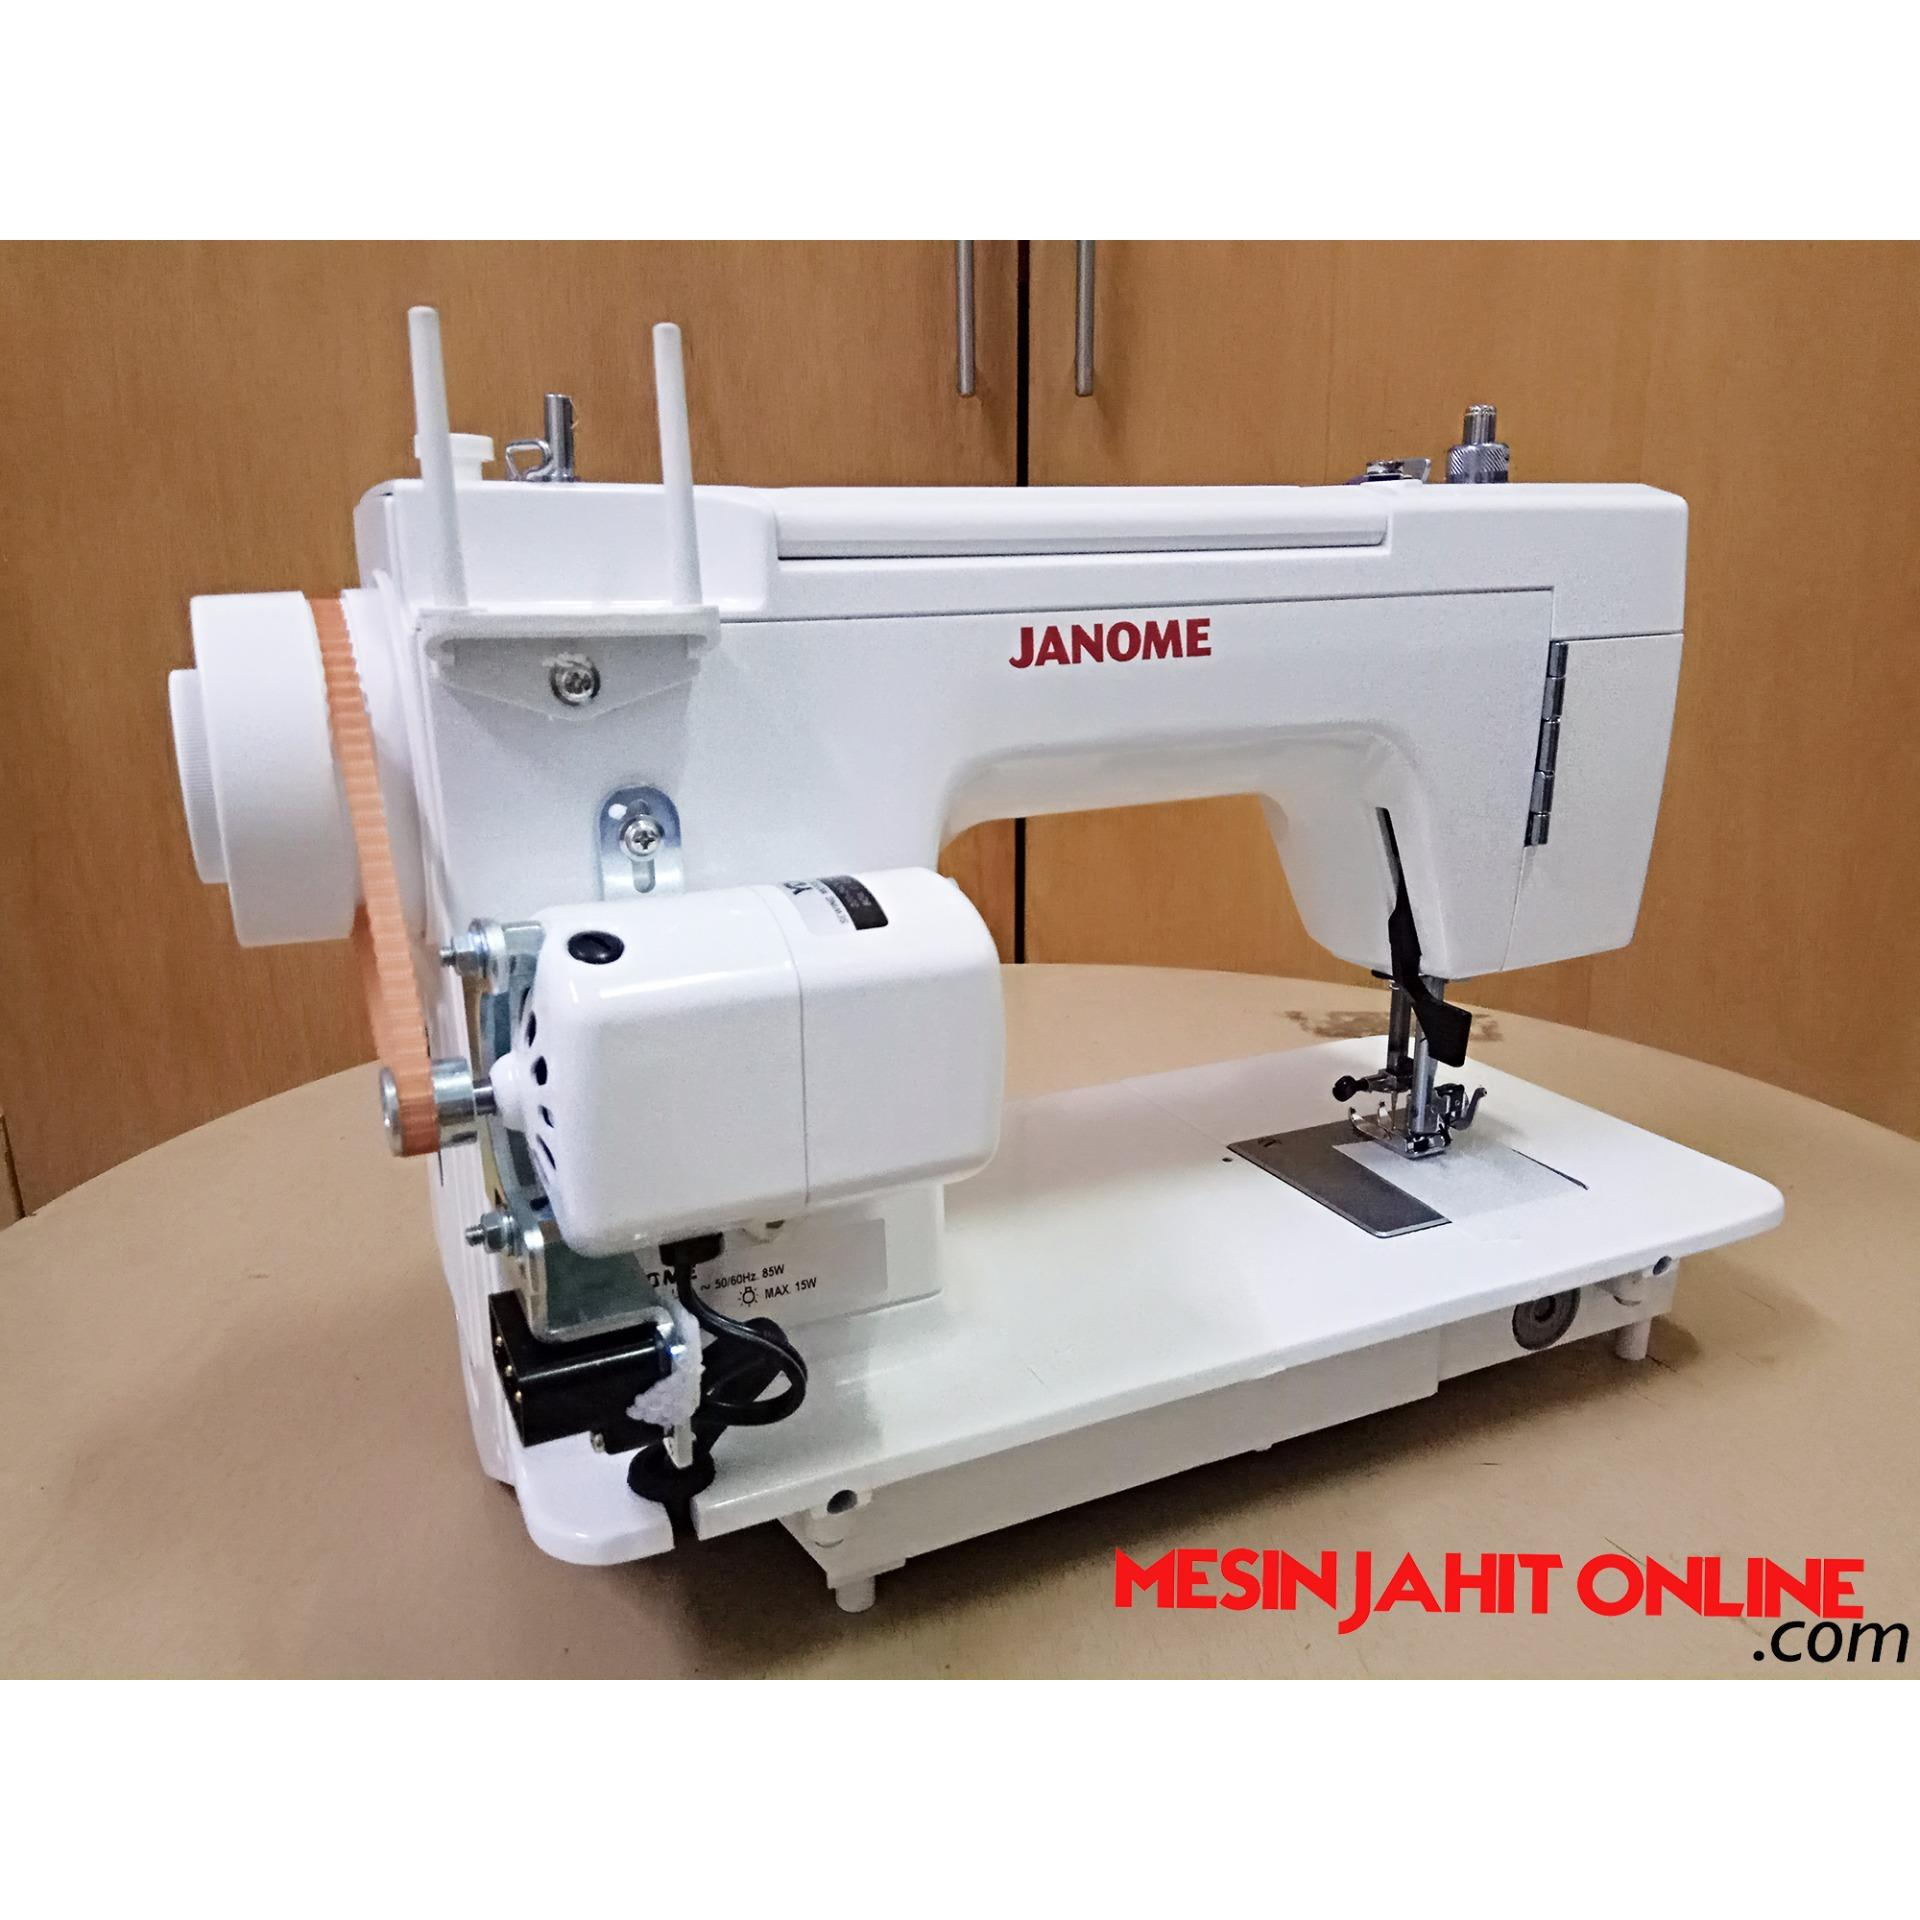 Janome Hd 3000 Mesin Jahit Heavy Duty Free Sjs Starter Kit Page 4 1000 Portable Multifungsi Singer 5523 Scholastic Vippackages Source L 395f Japan